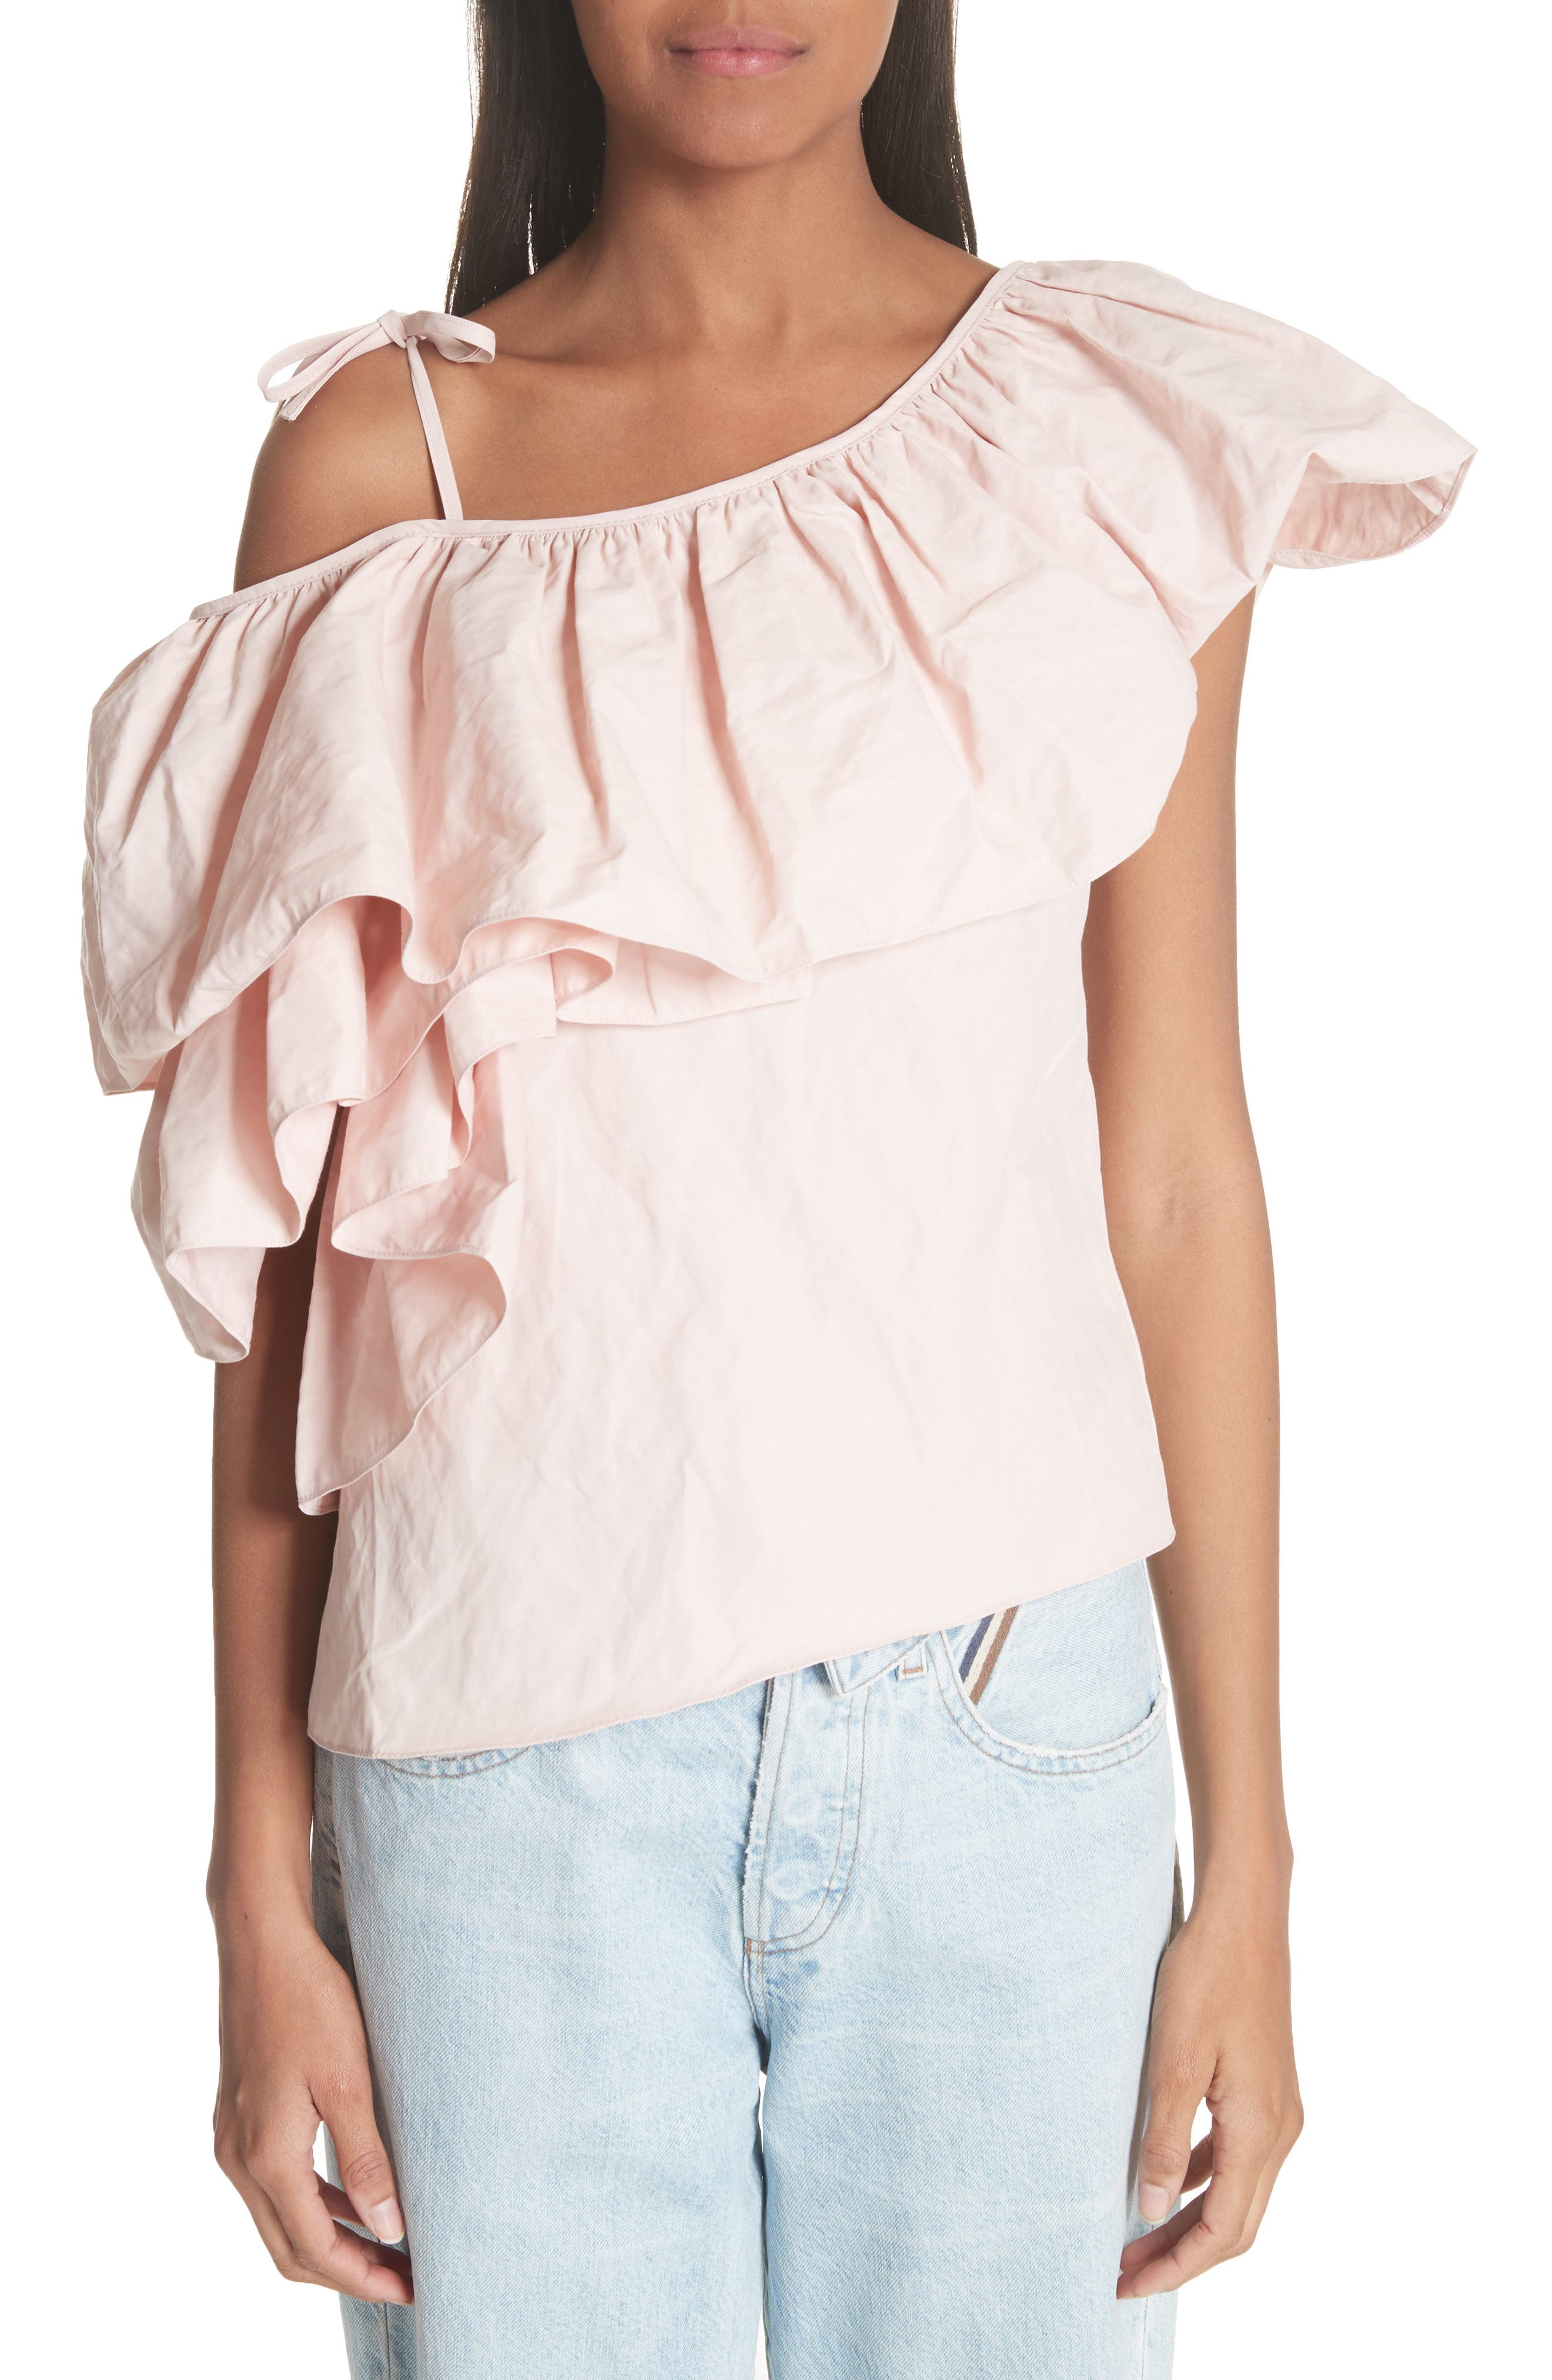 Marques'Almeida One Shoulder Ruffle Top,                             Main thumbnail 1, color,                             650